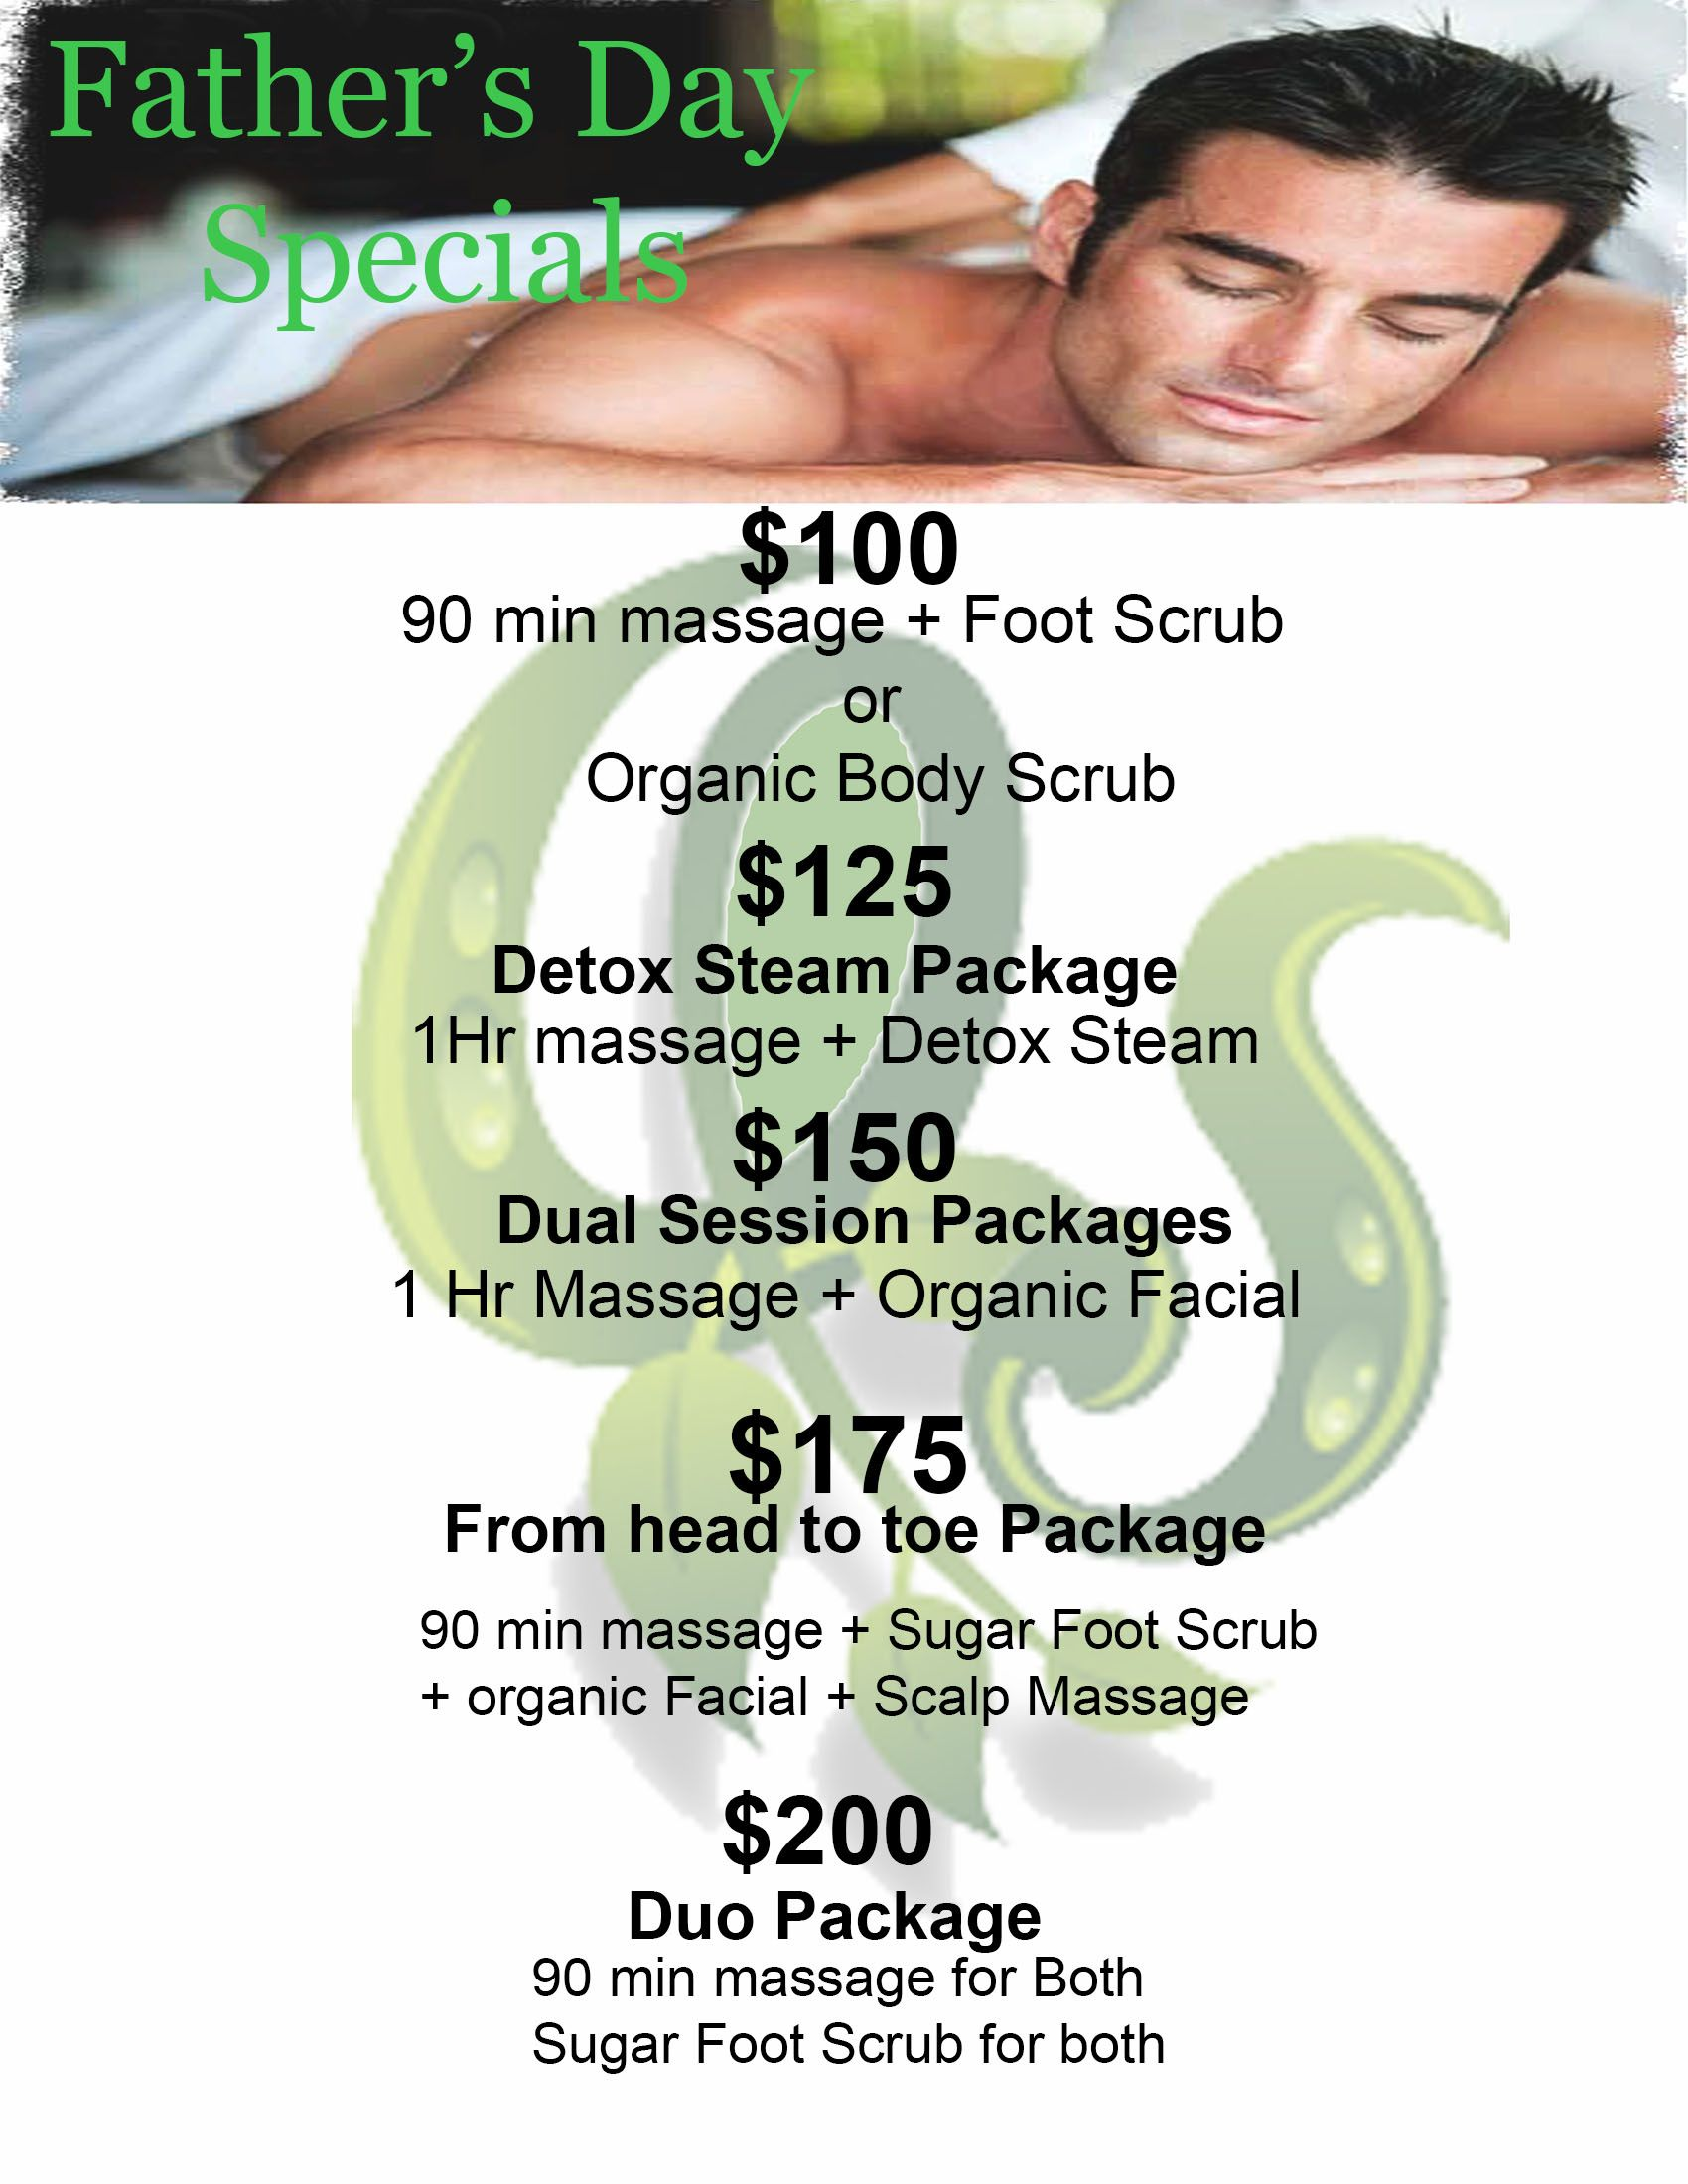 Fathers Day Special Still Going On Come On In To Organic Spa Massage In Atx Salon Promotions Massage Father S Day Specials